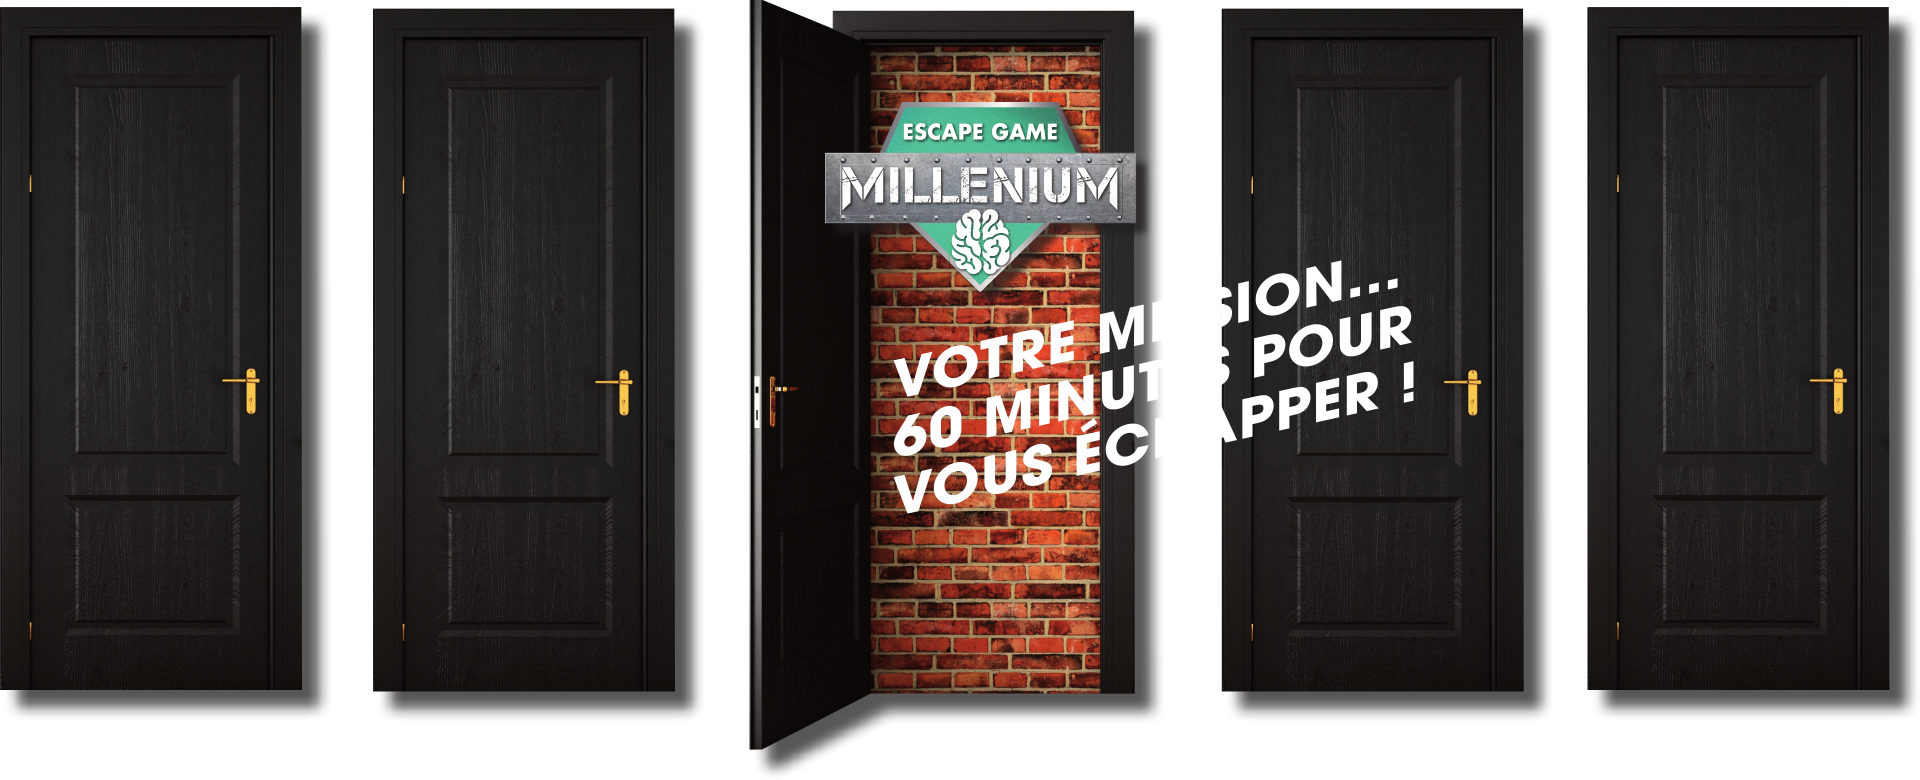 portes escape game millenium Chambly